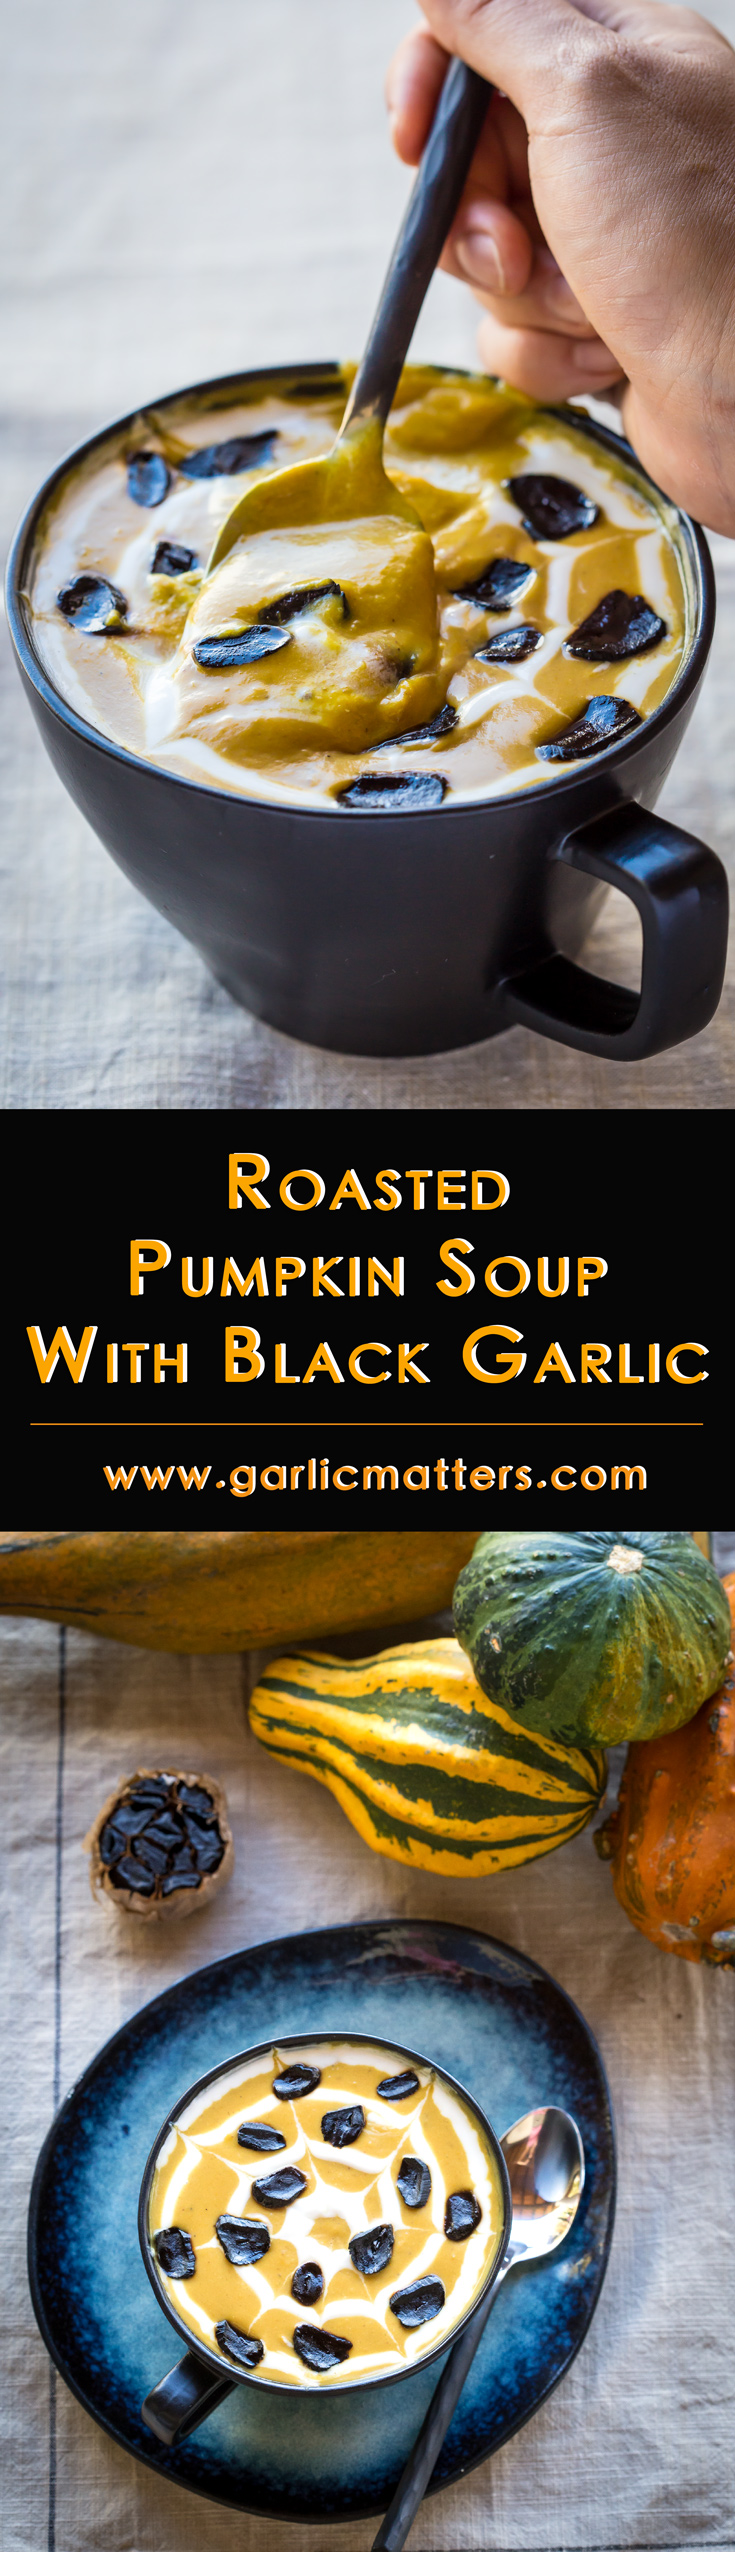 Easy spiced Roasted Pumpkin Soup with Black Garlic is without any reservations the best fall / Halloween style recipe I've ever had! With the addition of immune system boosting black garlic this delicious soup tastes like the truffle of all pumpkin soups! High content of health promoting antioxidants, anti cold & flu properties is an added bonus! Gluten free, vegan & paleo friendly.